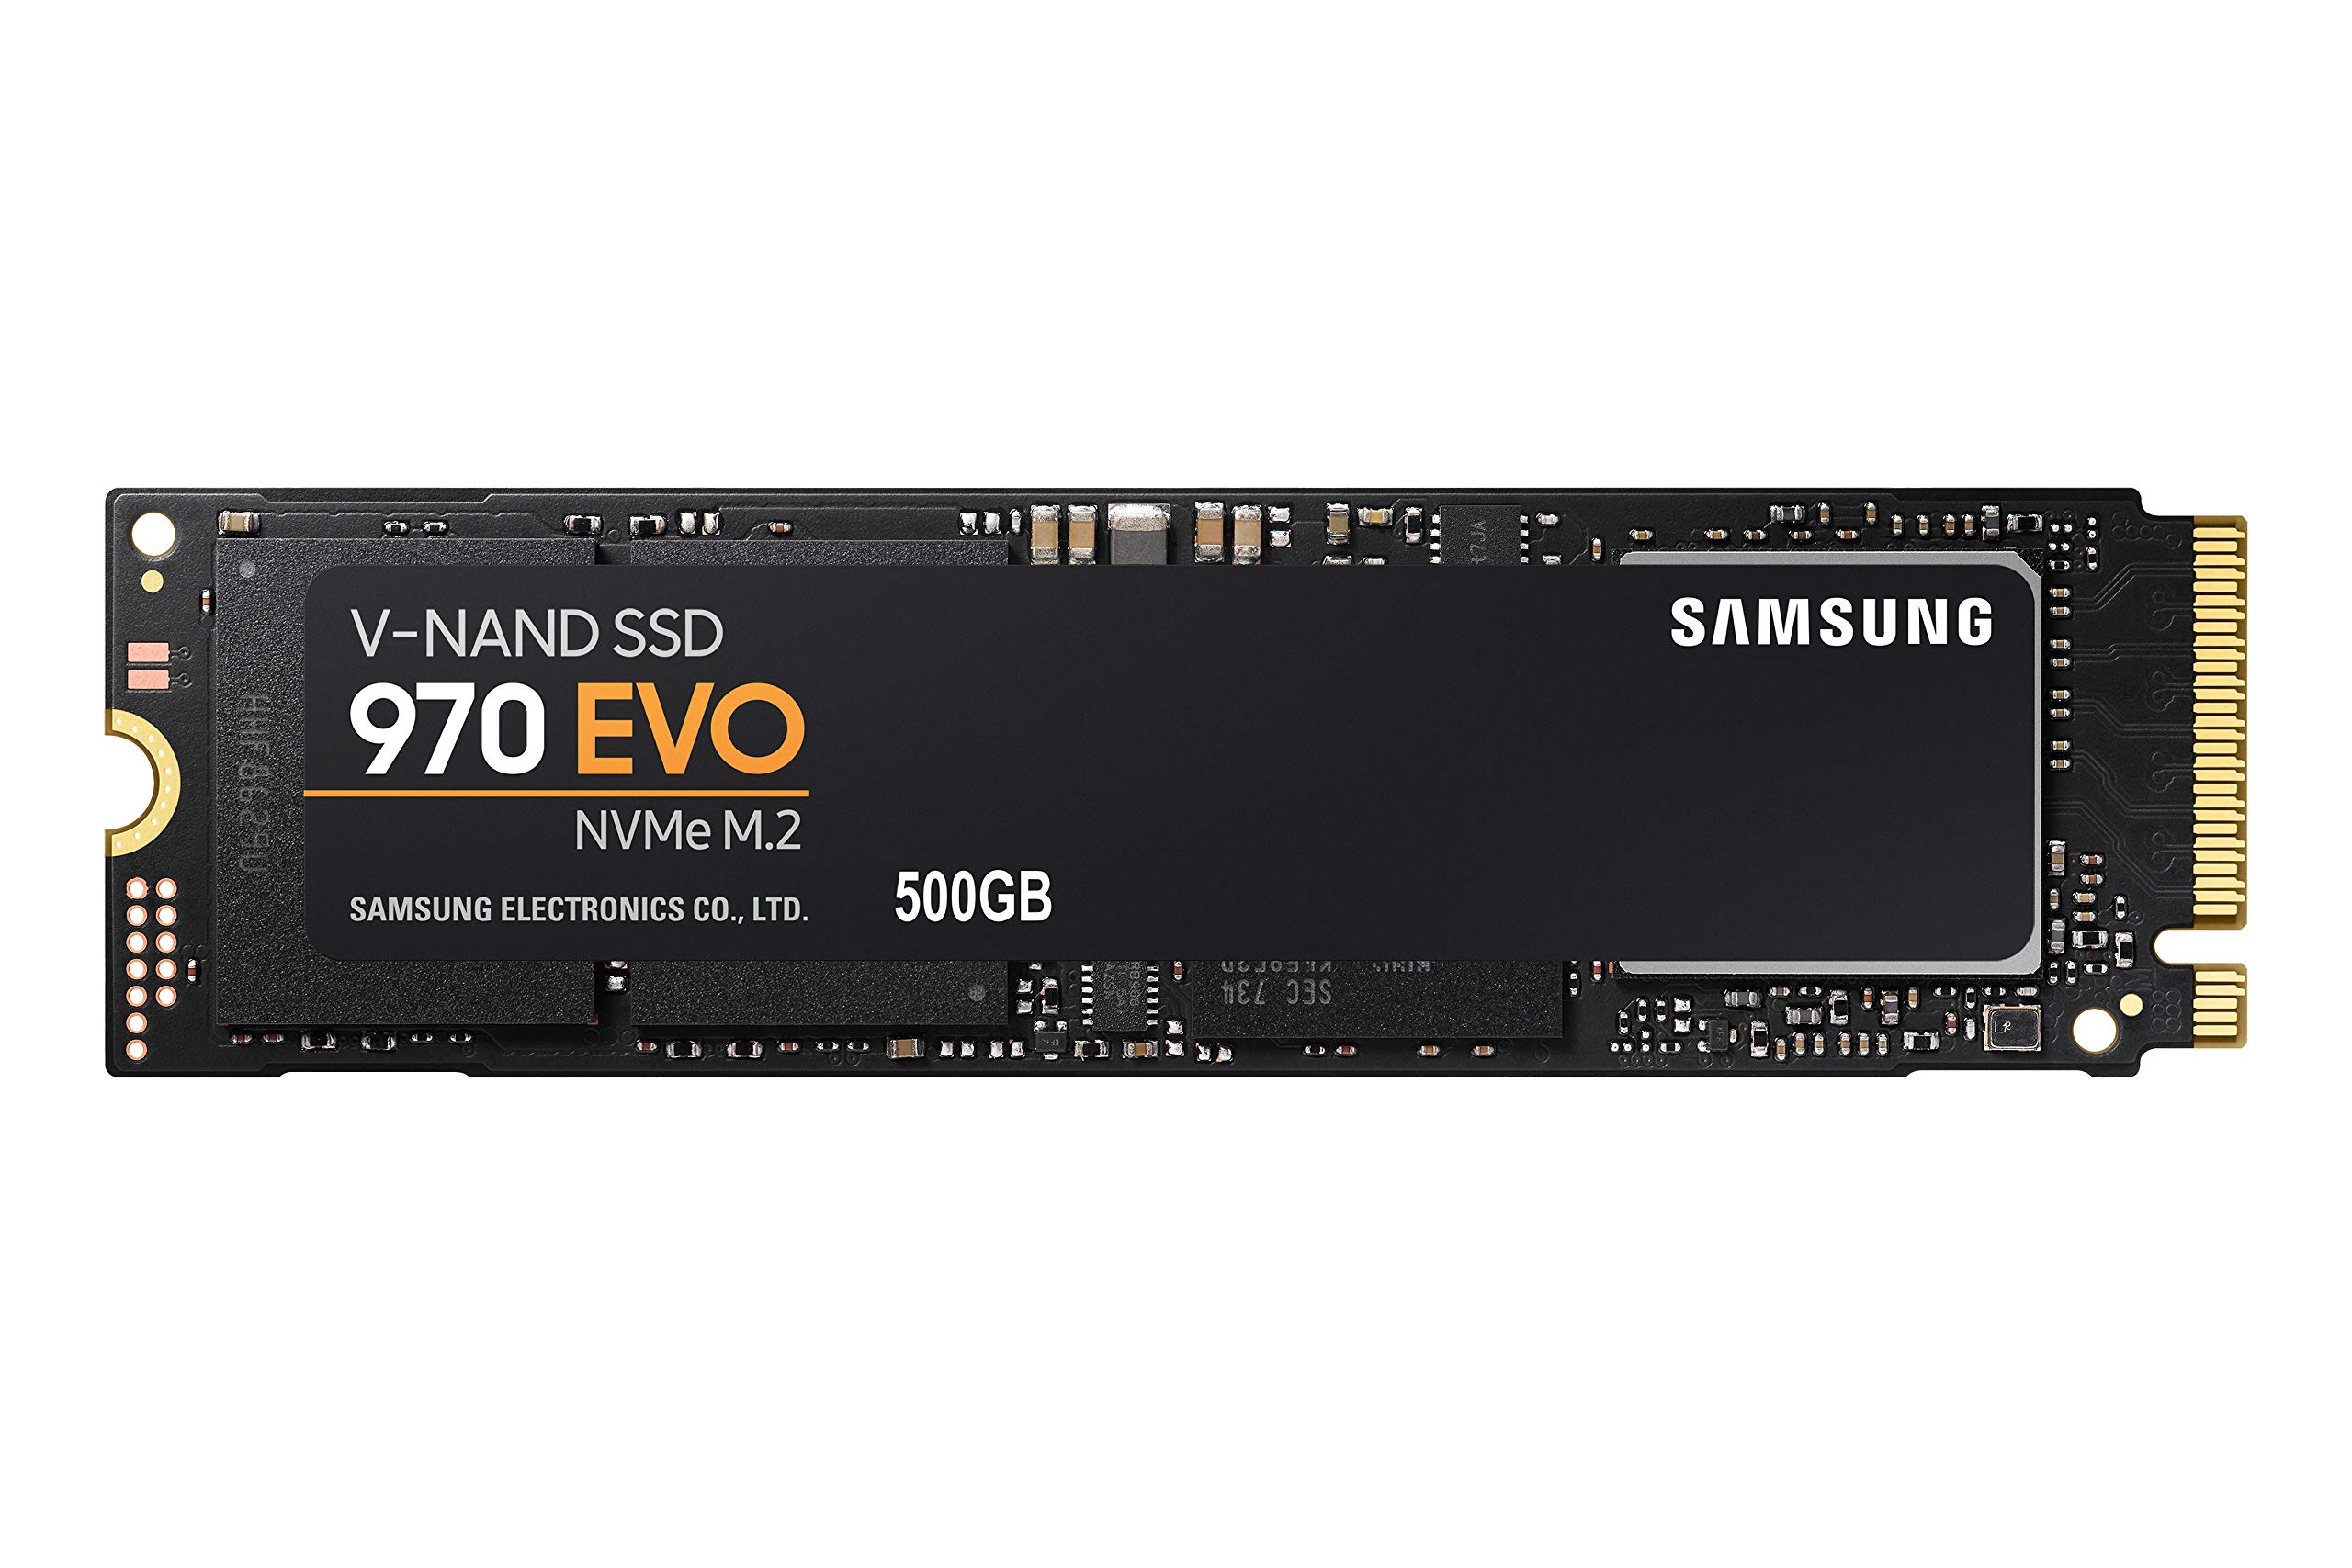 M.2 2280 500gb Nvme Samsung 970 Evo 500gb M.2 Nvme Interface